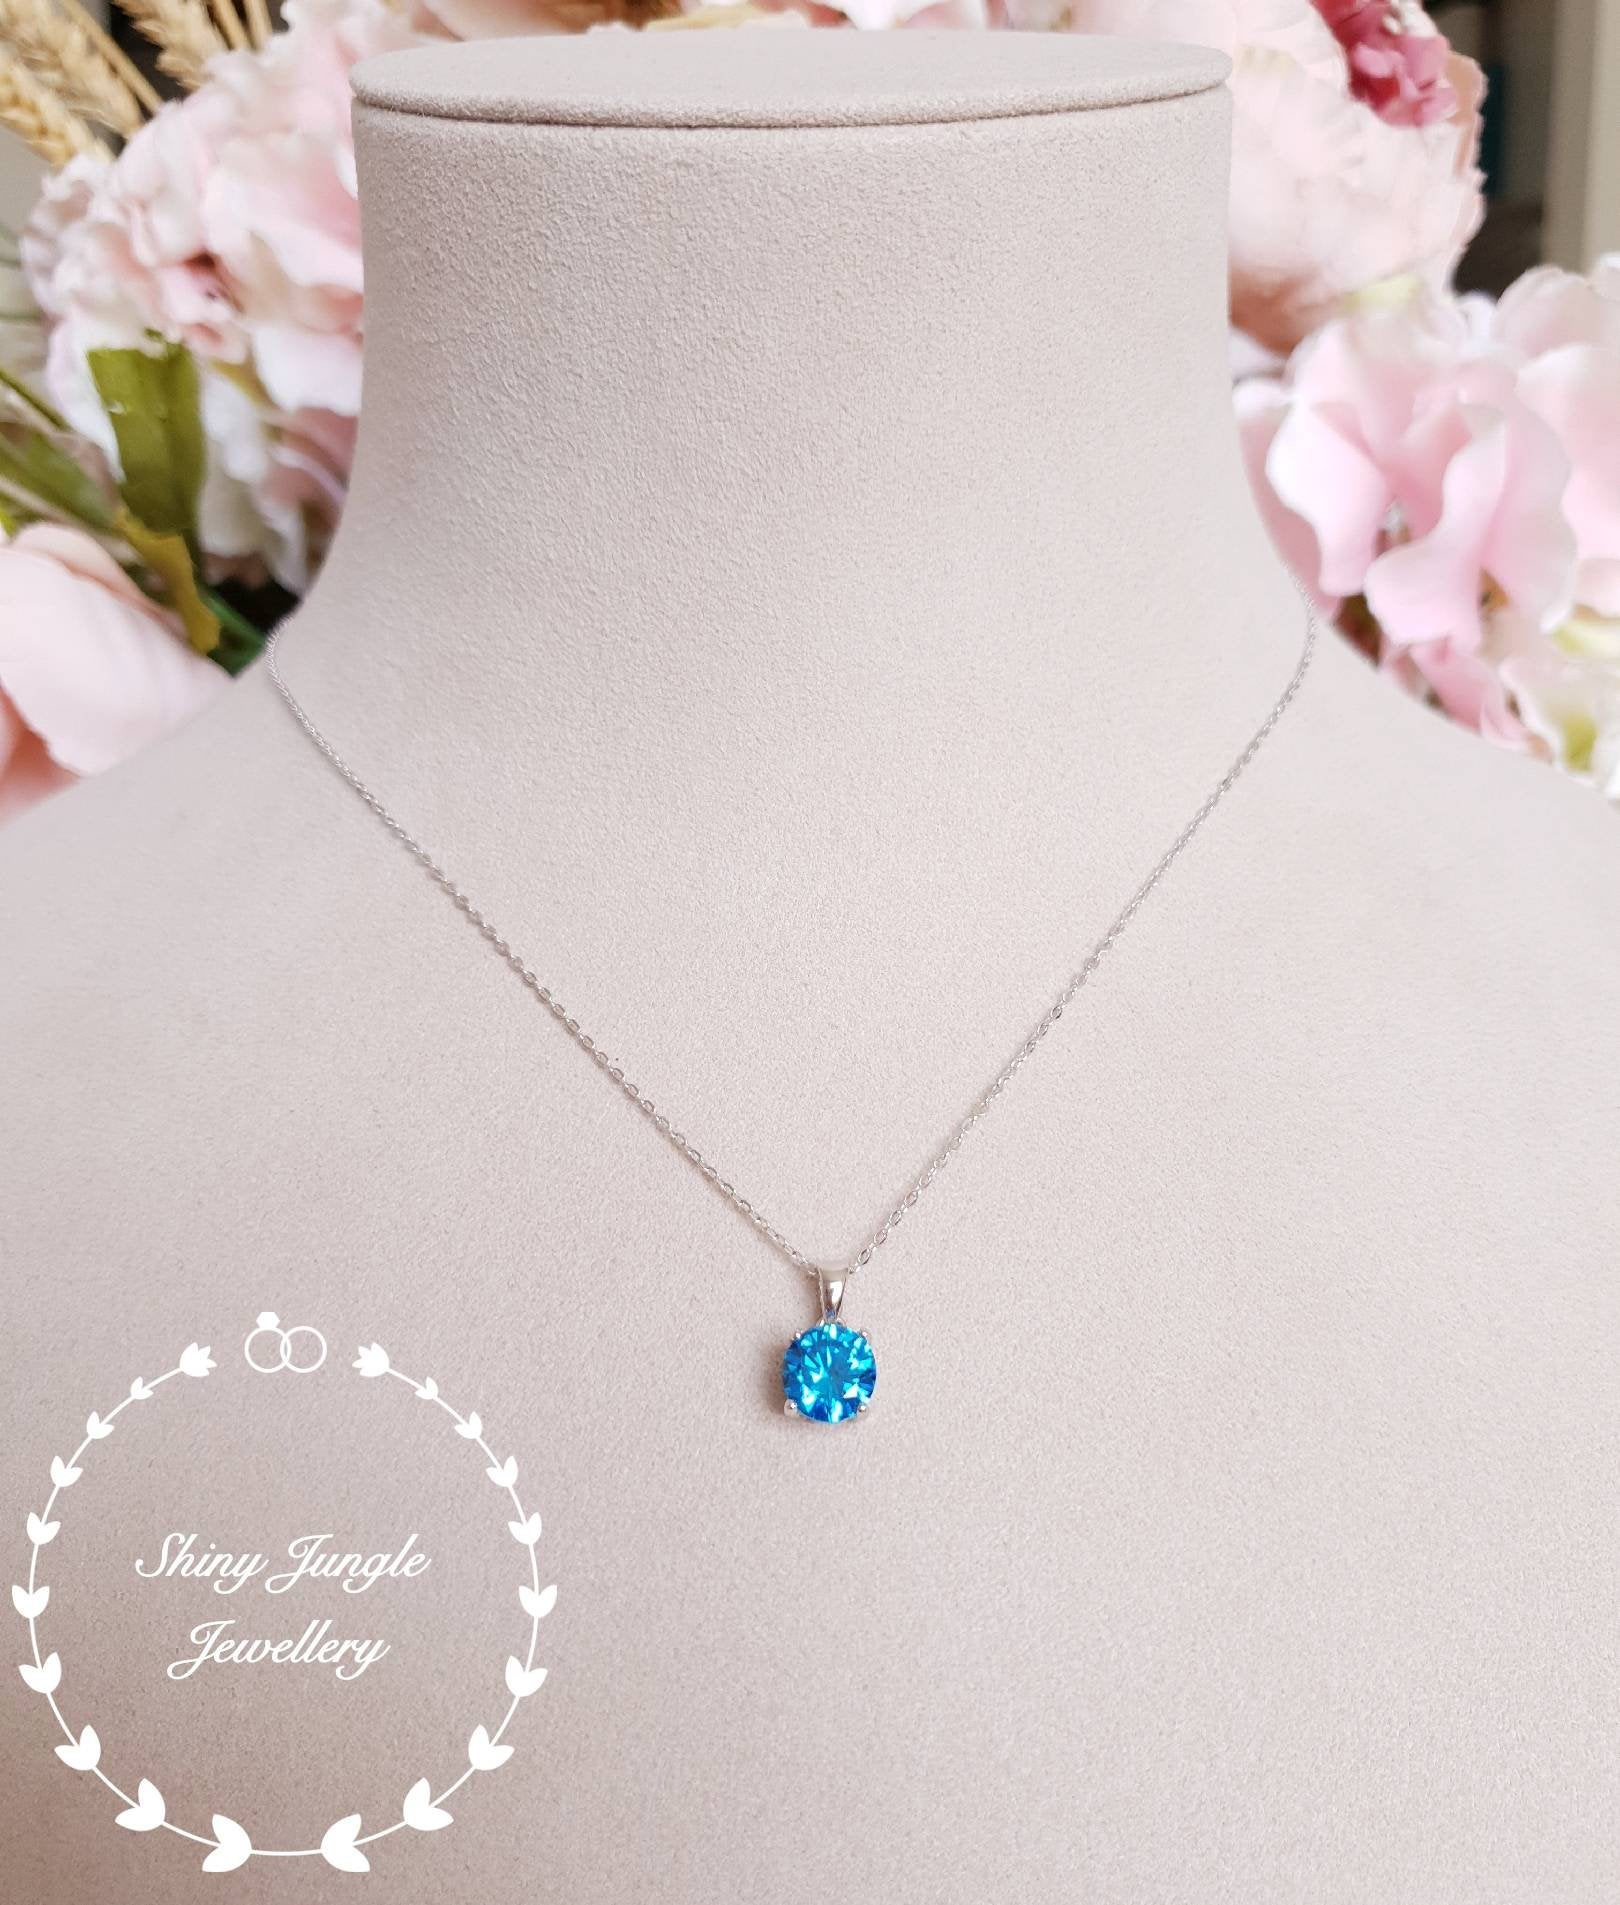 Swiss Blue Topaz Pendant, 2 Carats Round Cut Blue Topaz Necklace Regarding Most Recently Released London Blue December Birthstone Locket Element Necklaces (View 22 of 25)